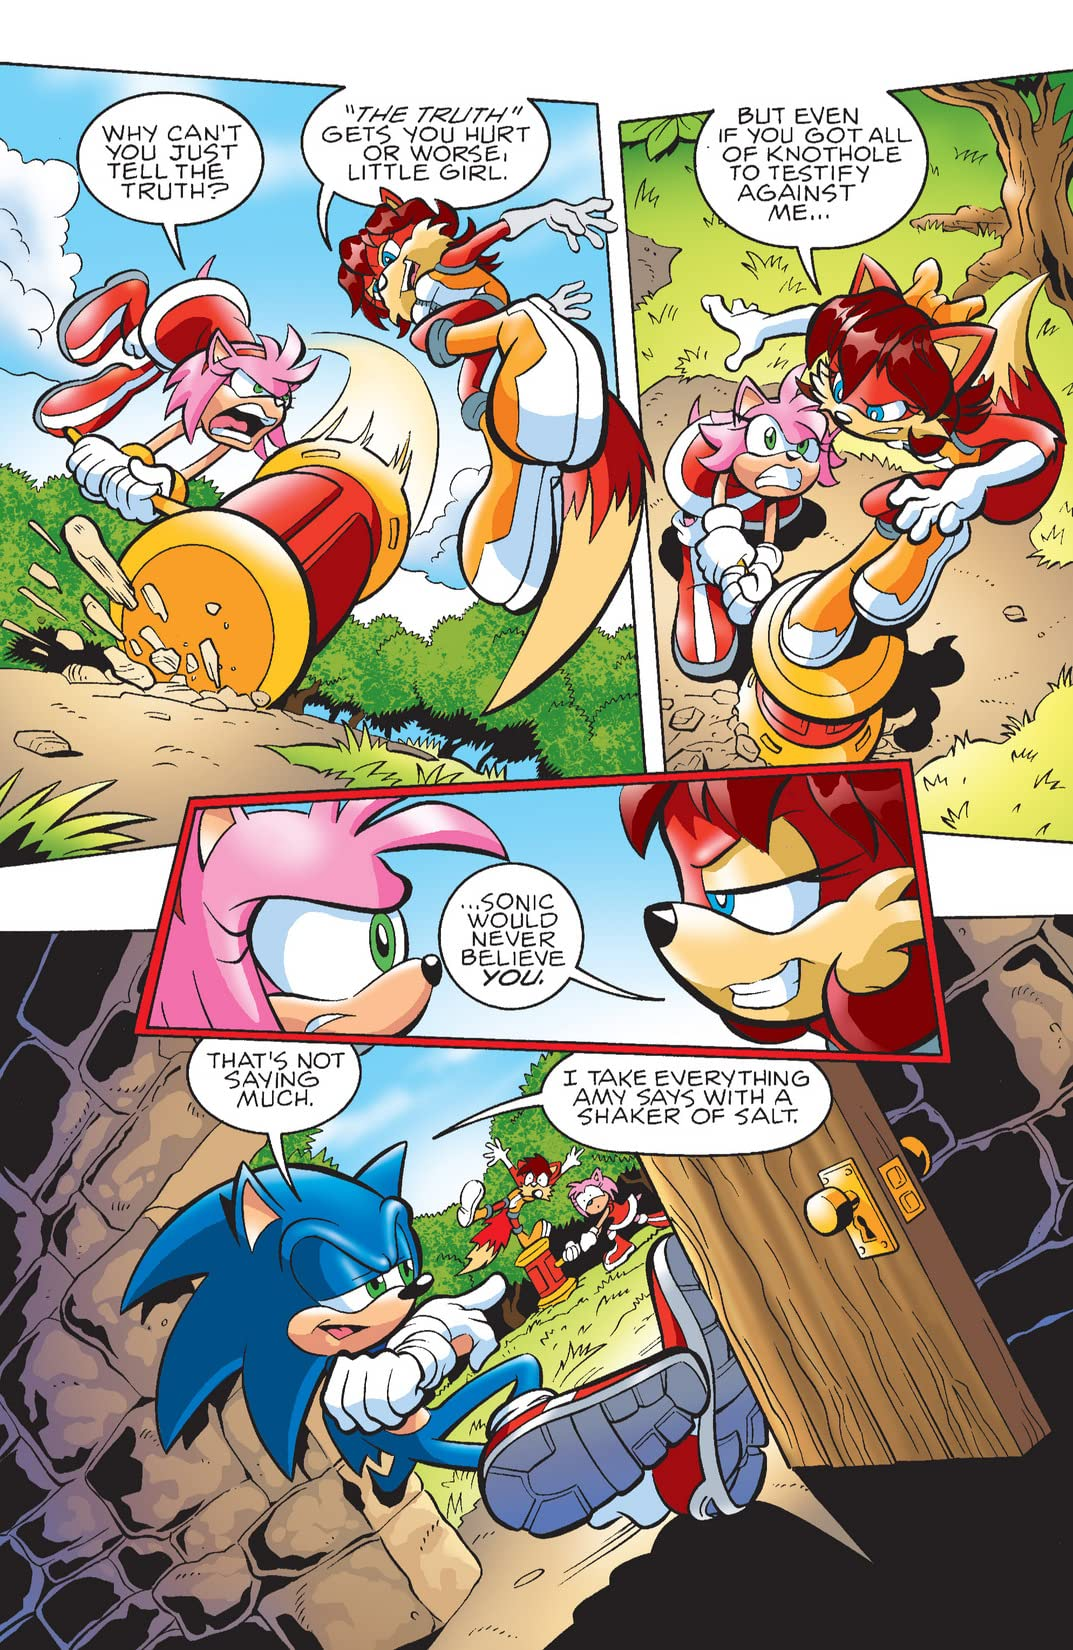 Sonic the Hedgehog #172